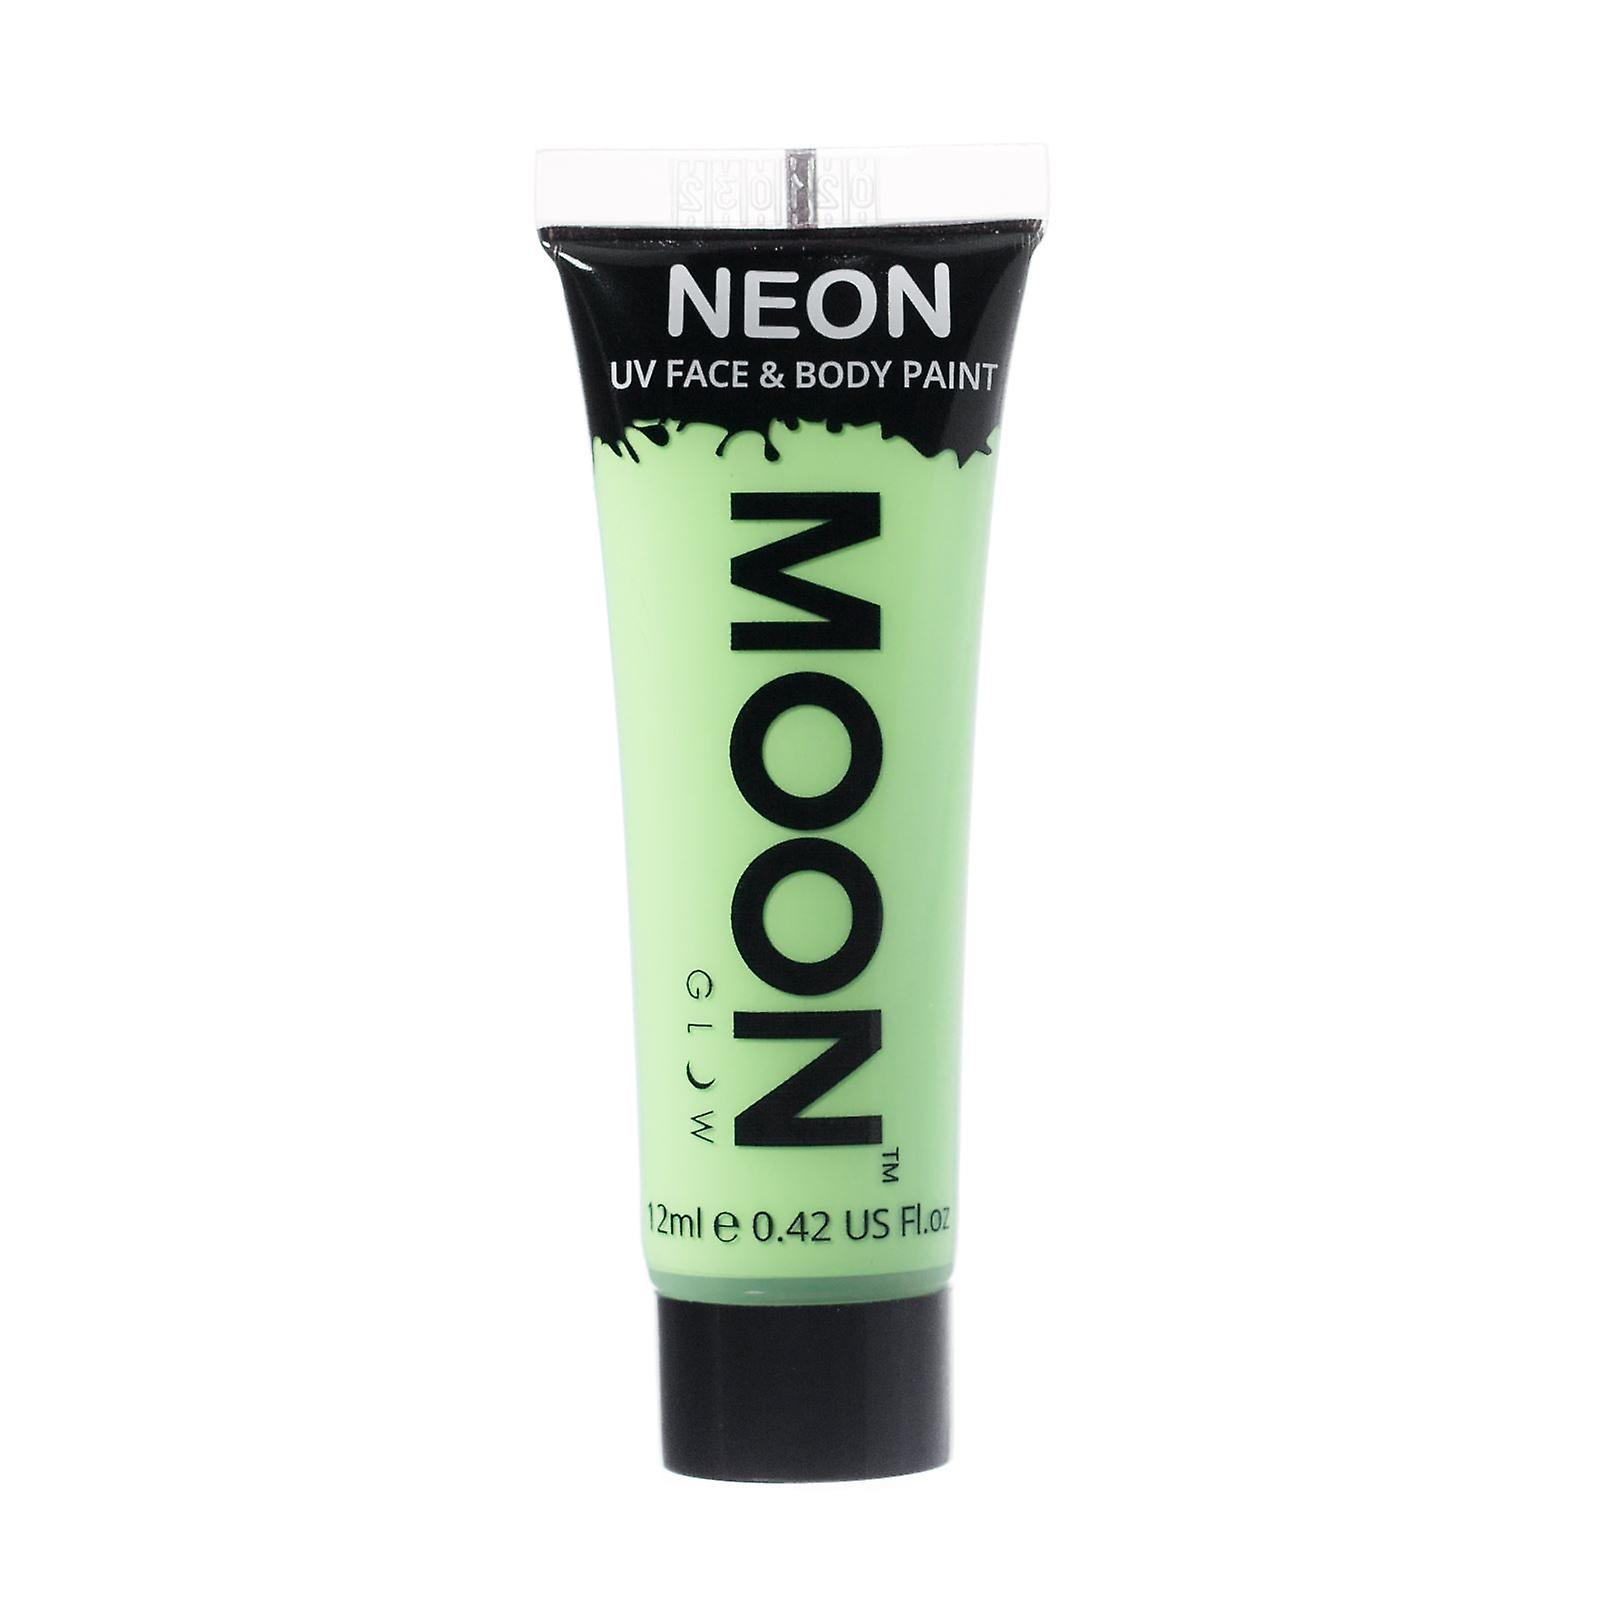 Moon Glow - 12ml Neon UV Face & Body Paint - Pastel Green